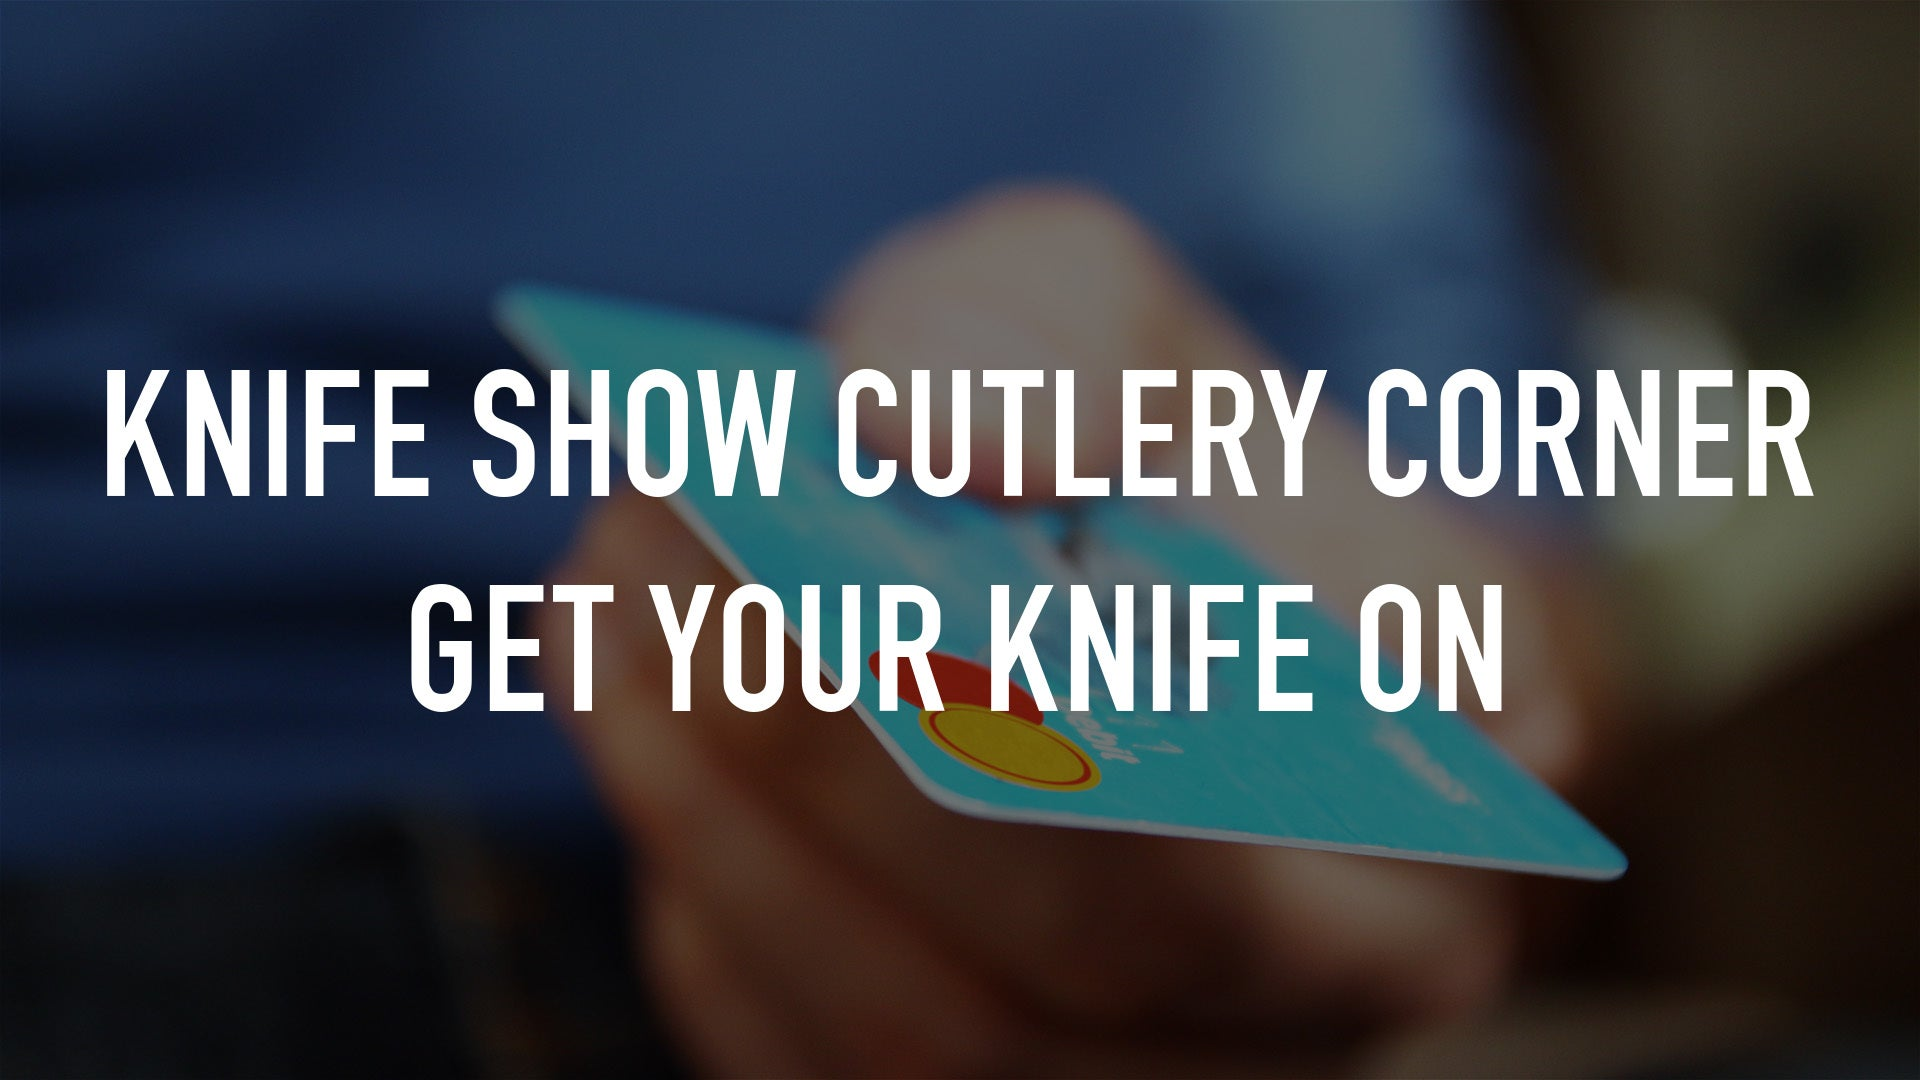 Knife Show Cutlery Corner Get Your Knife On